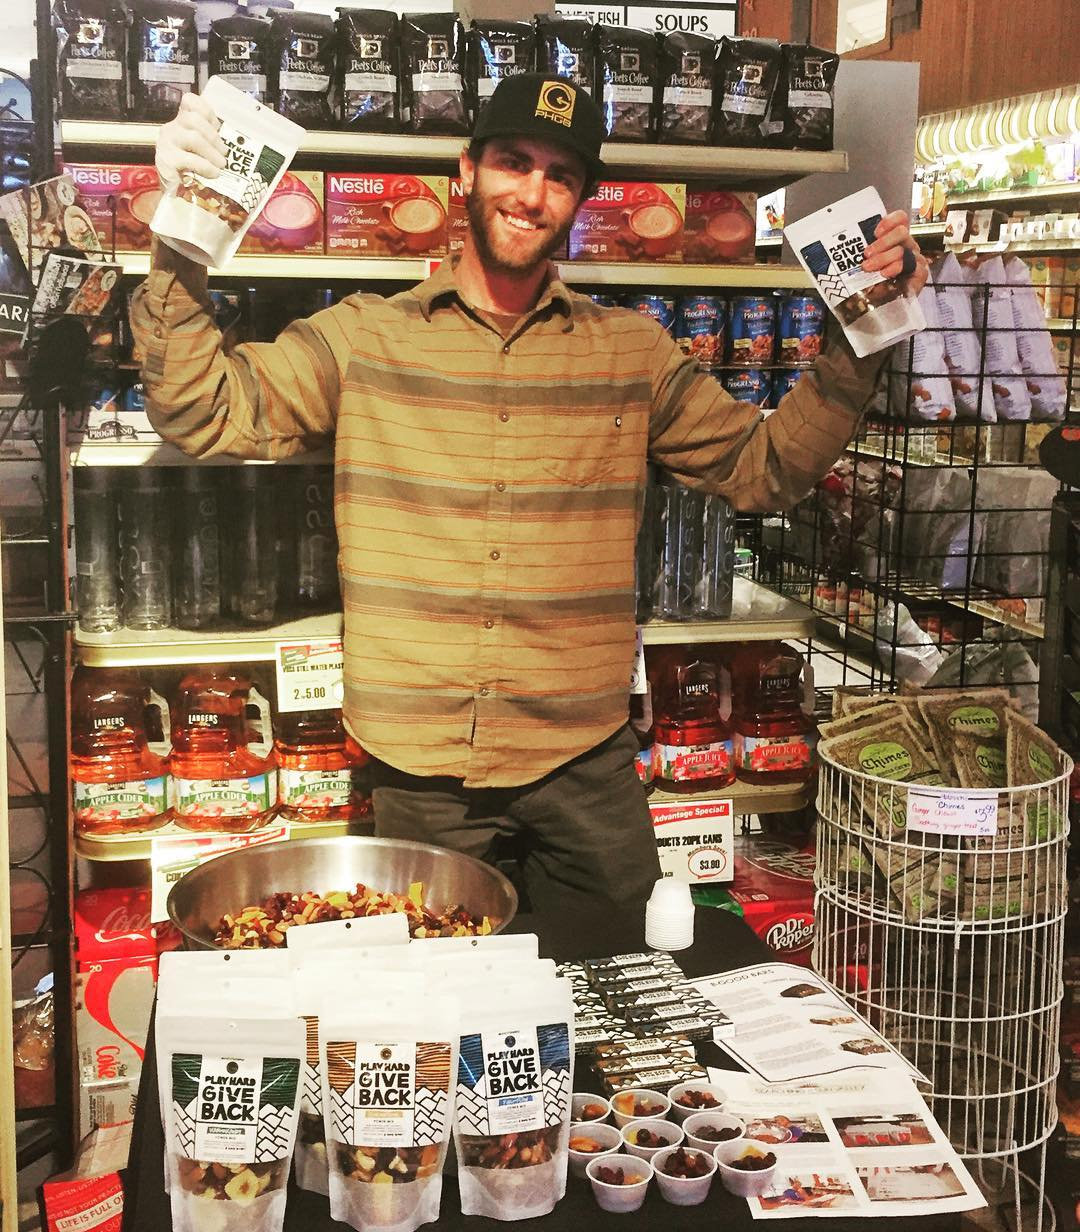 We'll be handing out free samples at @atkinsonsmarket in Ketchum until 6:00 today. Make sure to drop by to try our goodies and learn more about our mission!